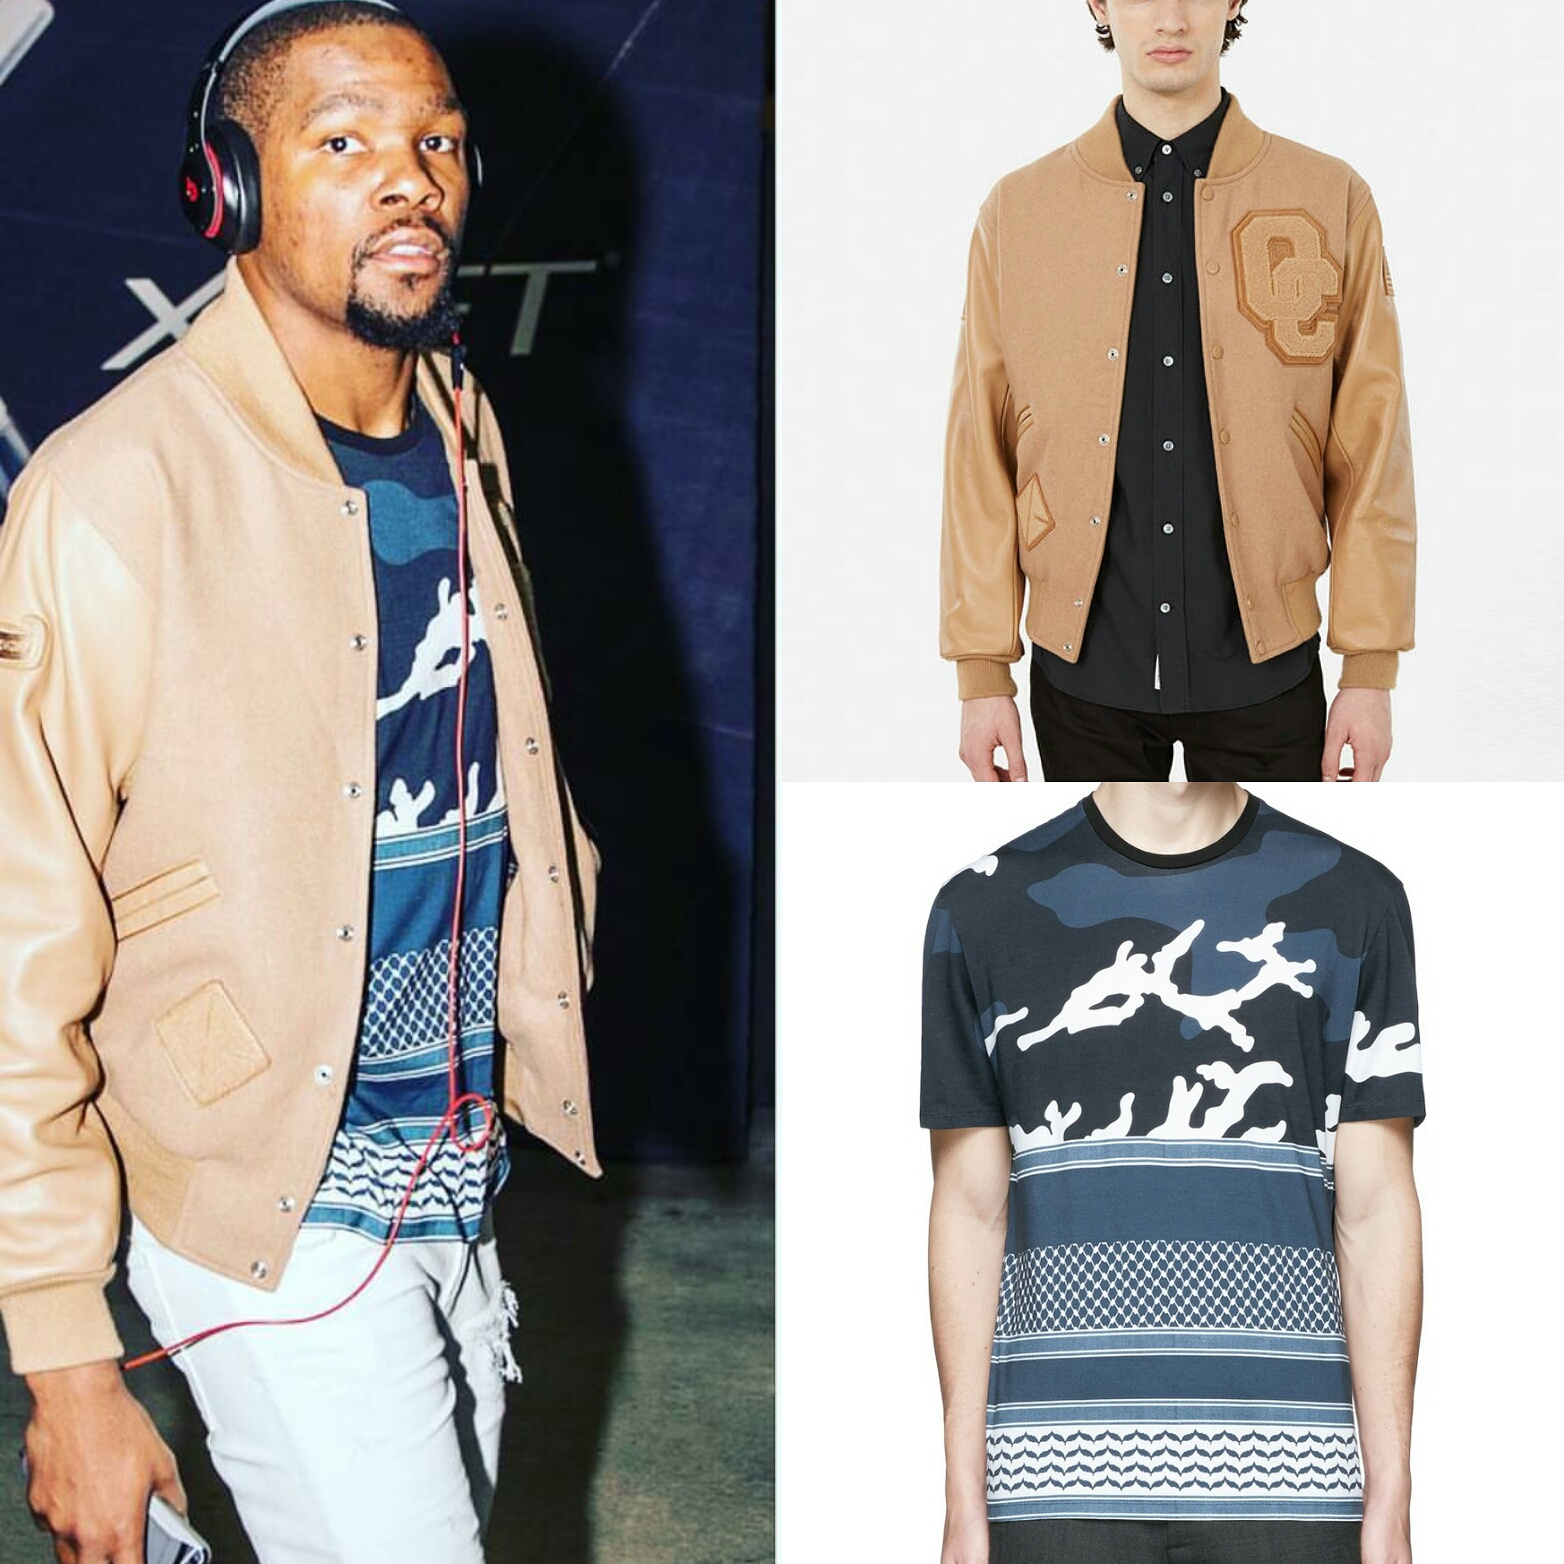 11eabcd2c STYLE: Kevin Durant's Opening Ceremony Varsity Jacket And Neil ...